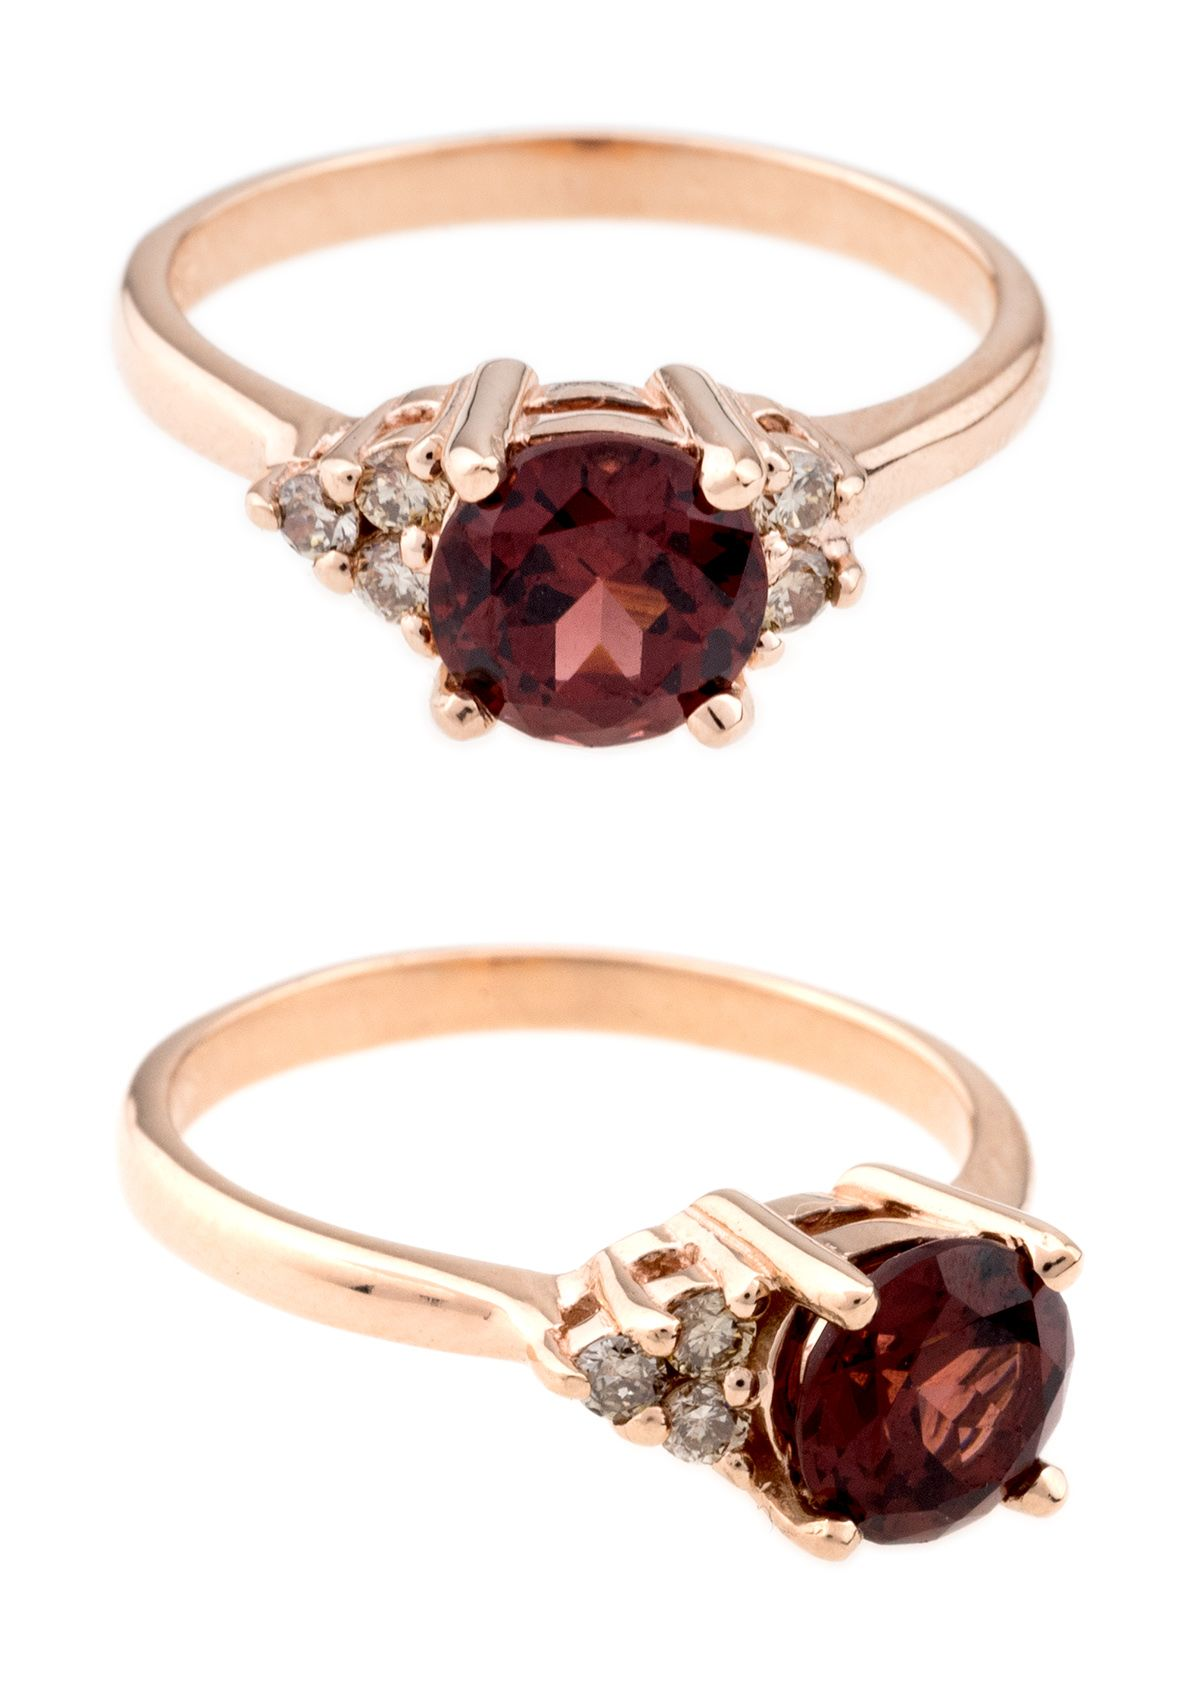 12 days of ts limited edition garnet engagement rings